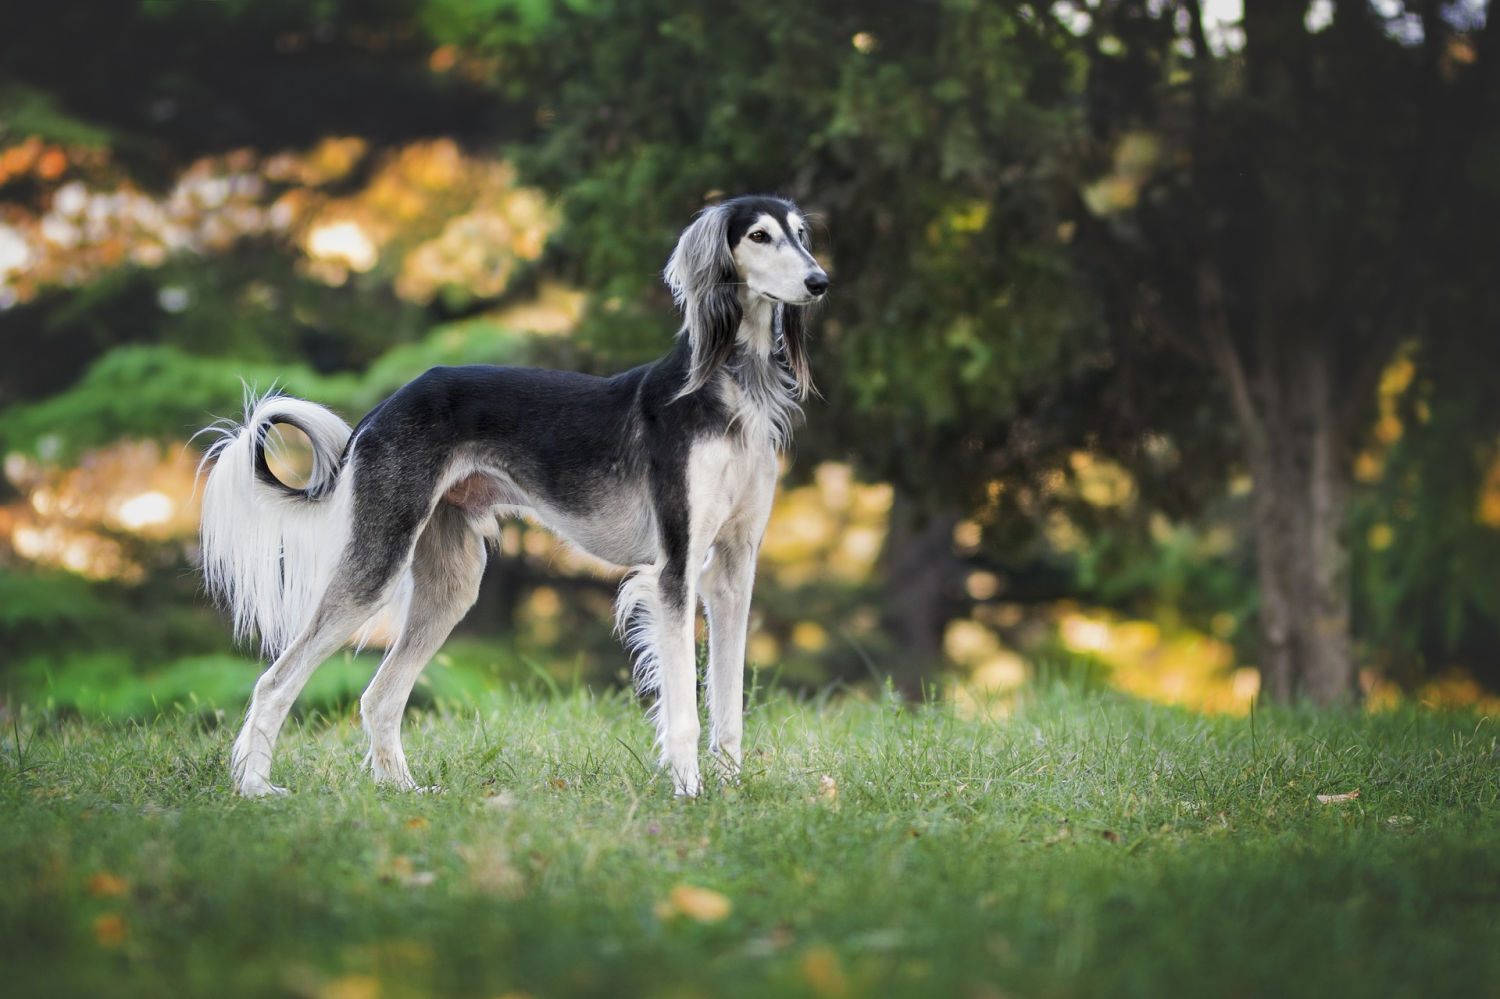 Thinking about adopting a retired greyhound? Here are some things you need to consider before you make your decision.